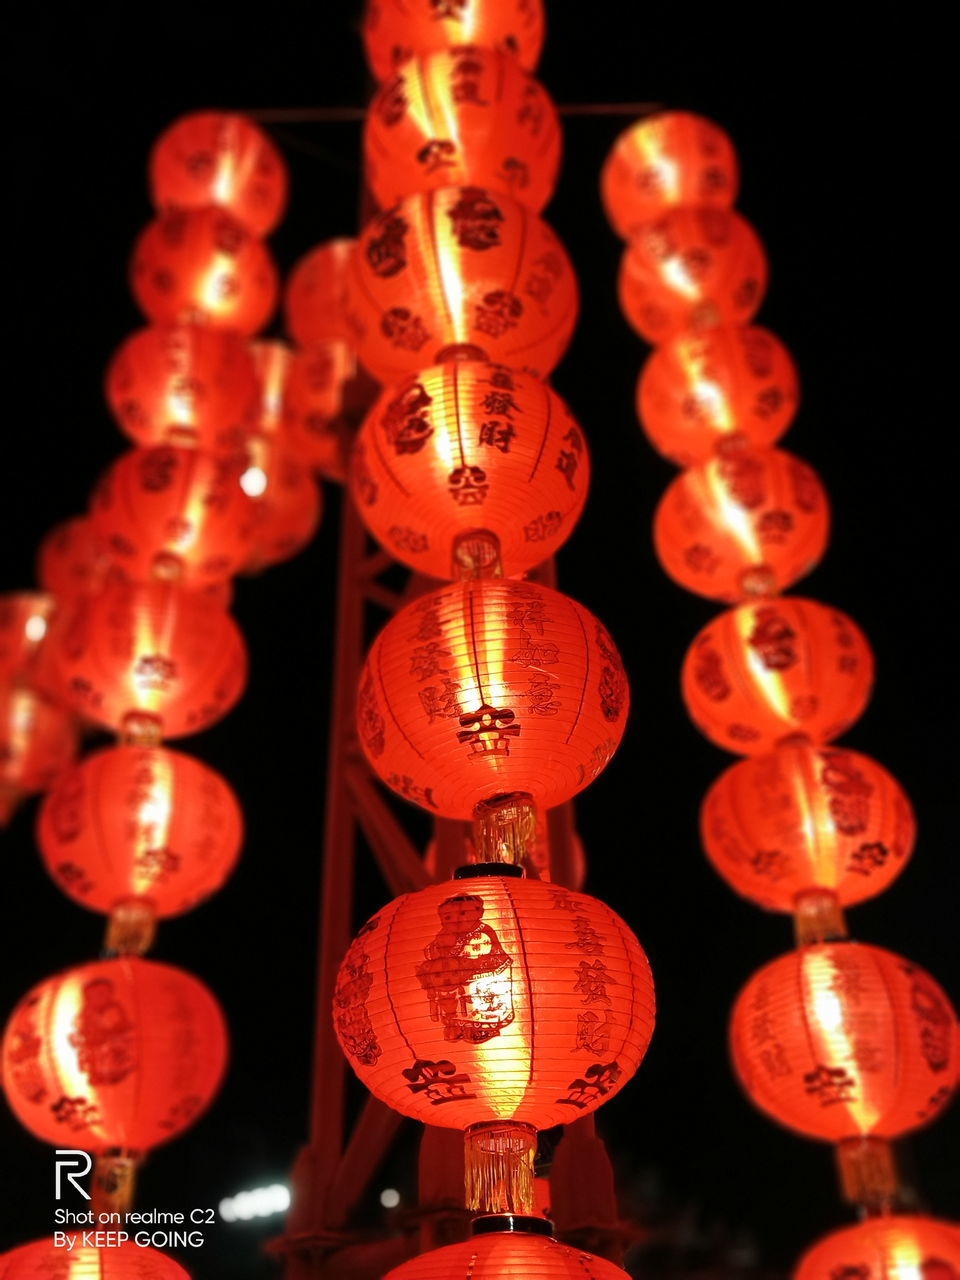 LOW ANGLE VIEW OF ILLUMINATED LANTERNS HANGING AGAINST LIGHT